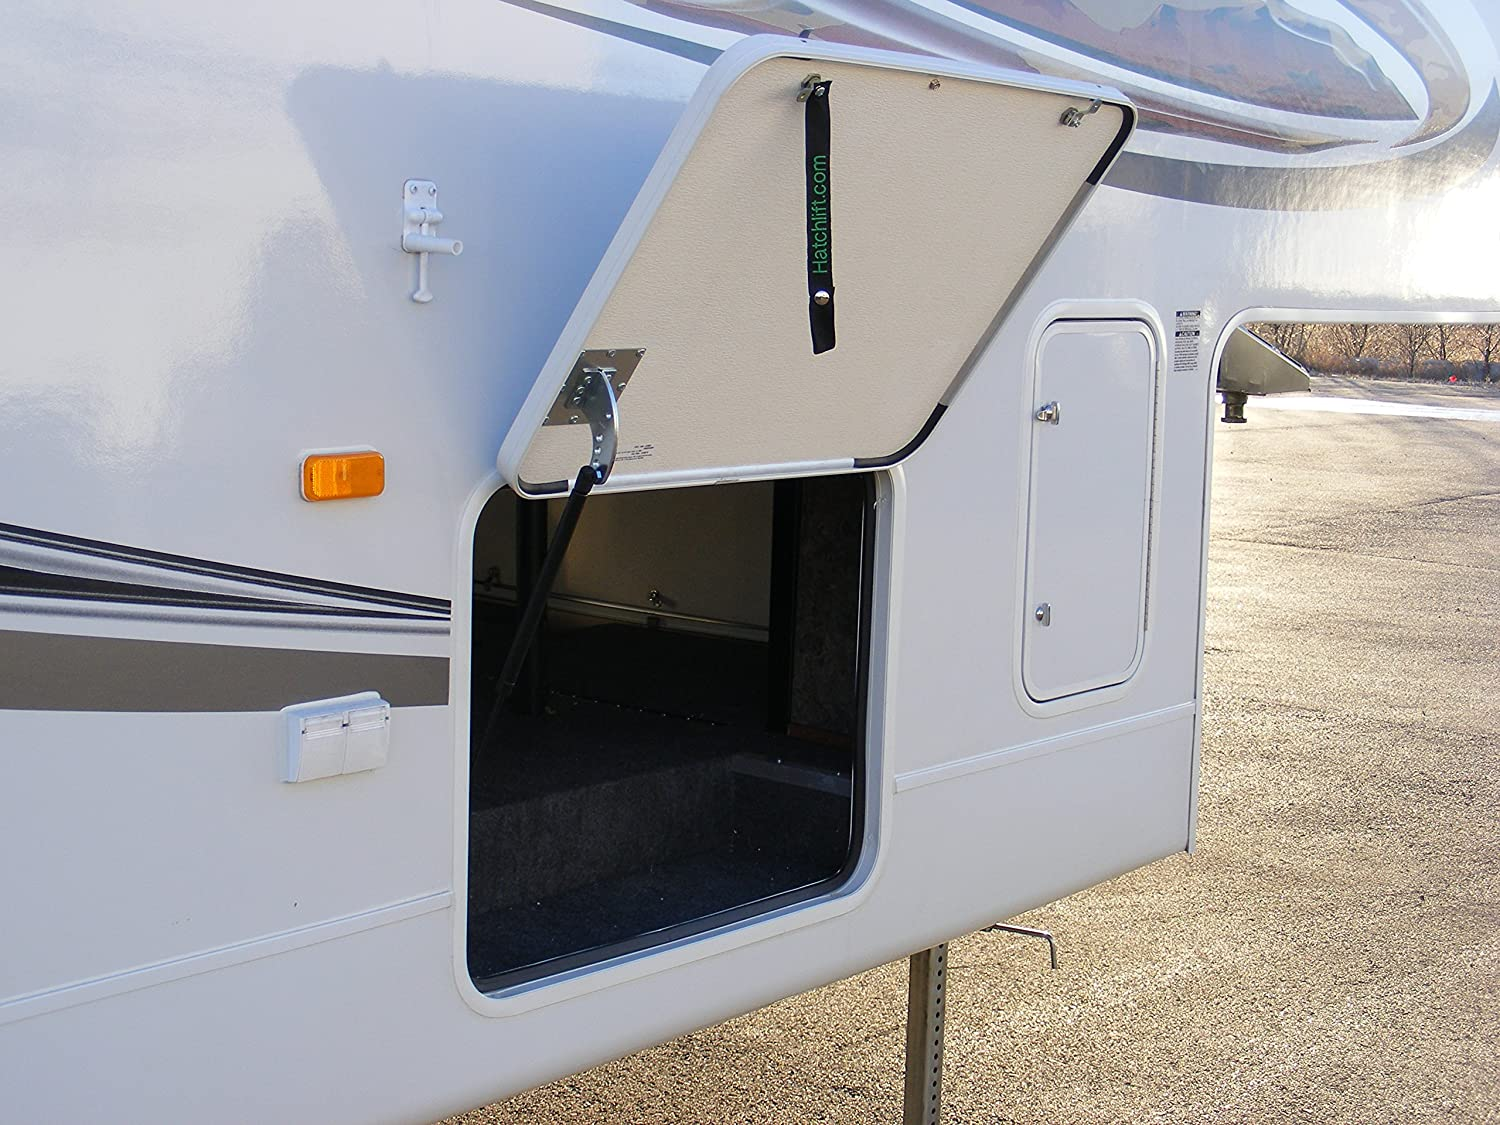 Hatchlift RV Door Lift Kit for doors from 21